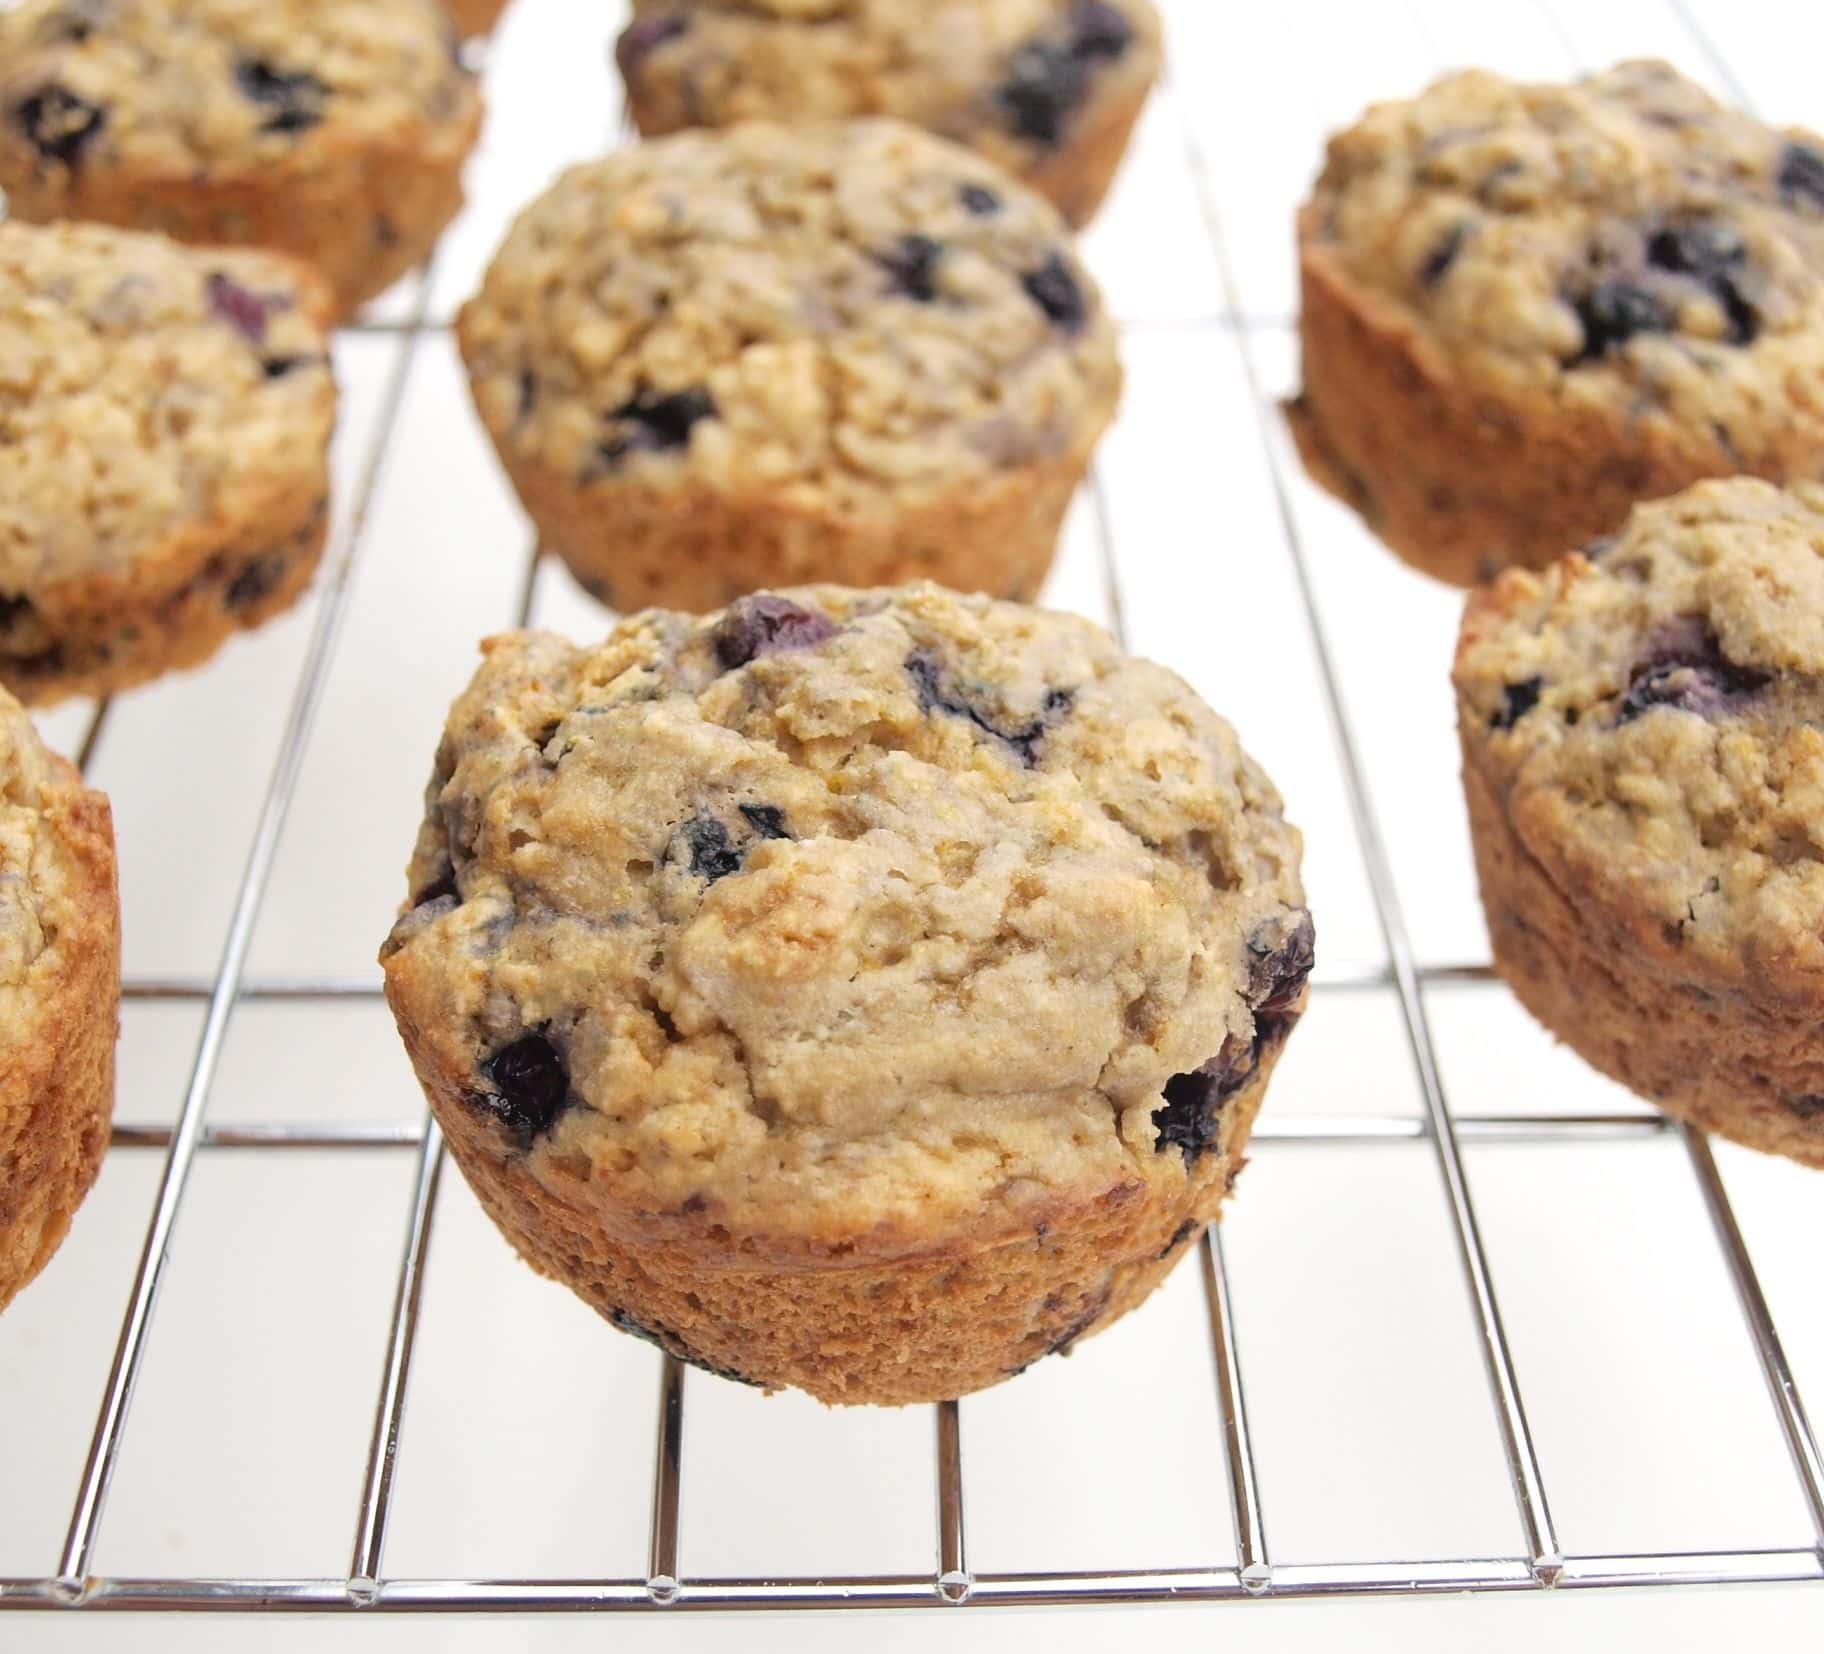 100% whole grain blueberry-lemon muffins